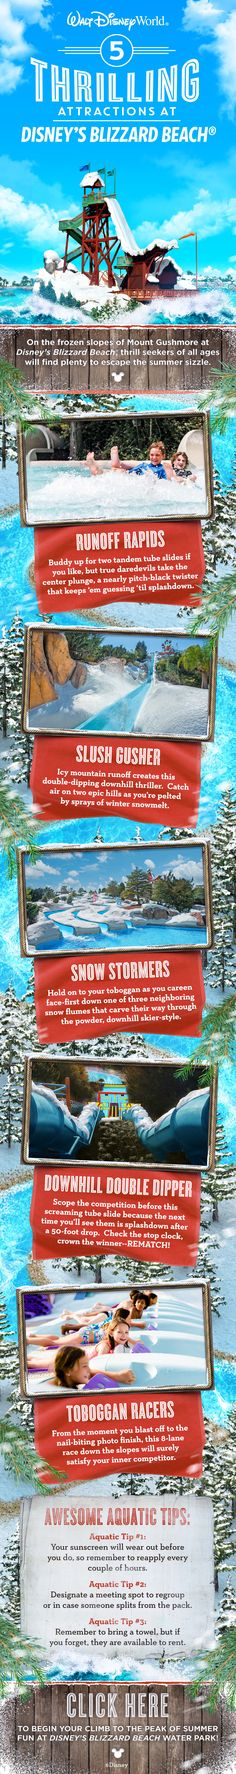 Thrill seekers will find plenty of action at Disney's Blizzard Beach Water Park at Walt Disney World! Discover frosty fun for the whole family while you zip down the slushy slopes of Mount Gushmore on one of the world's tallest and fastest waterslides. Make sure you make time on your family vacation for a visit!